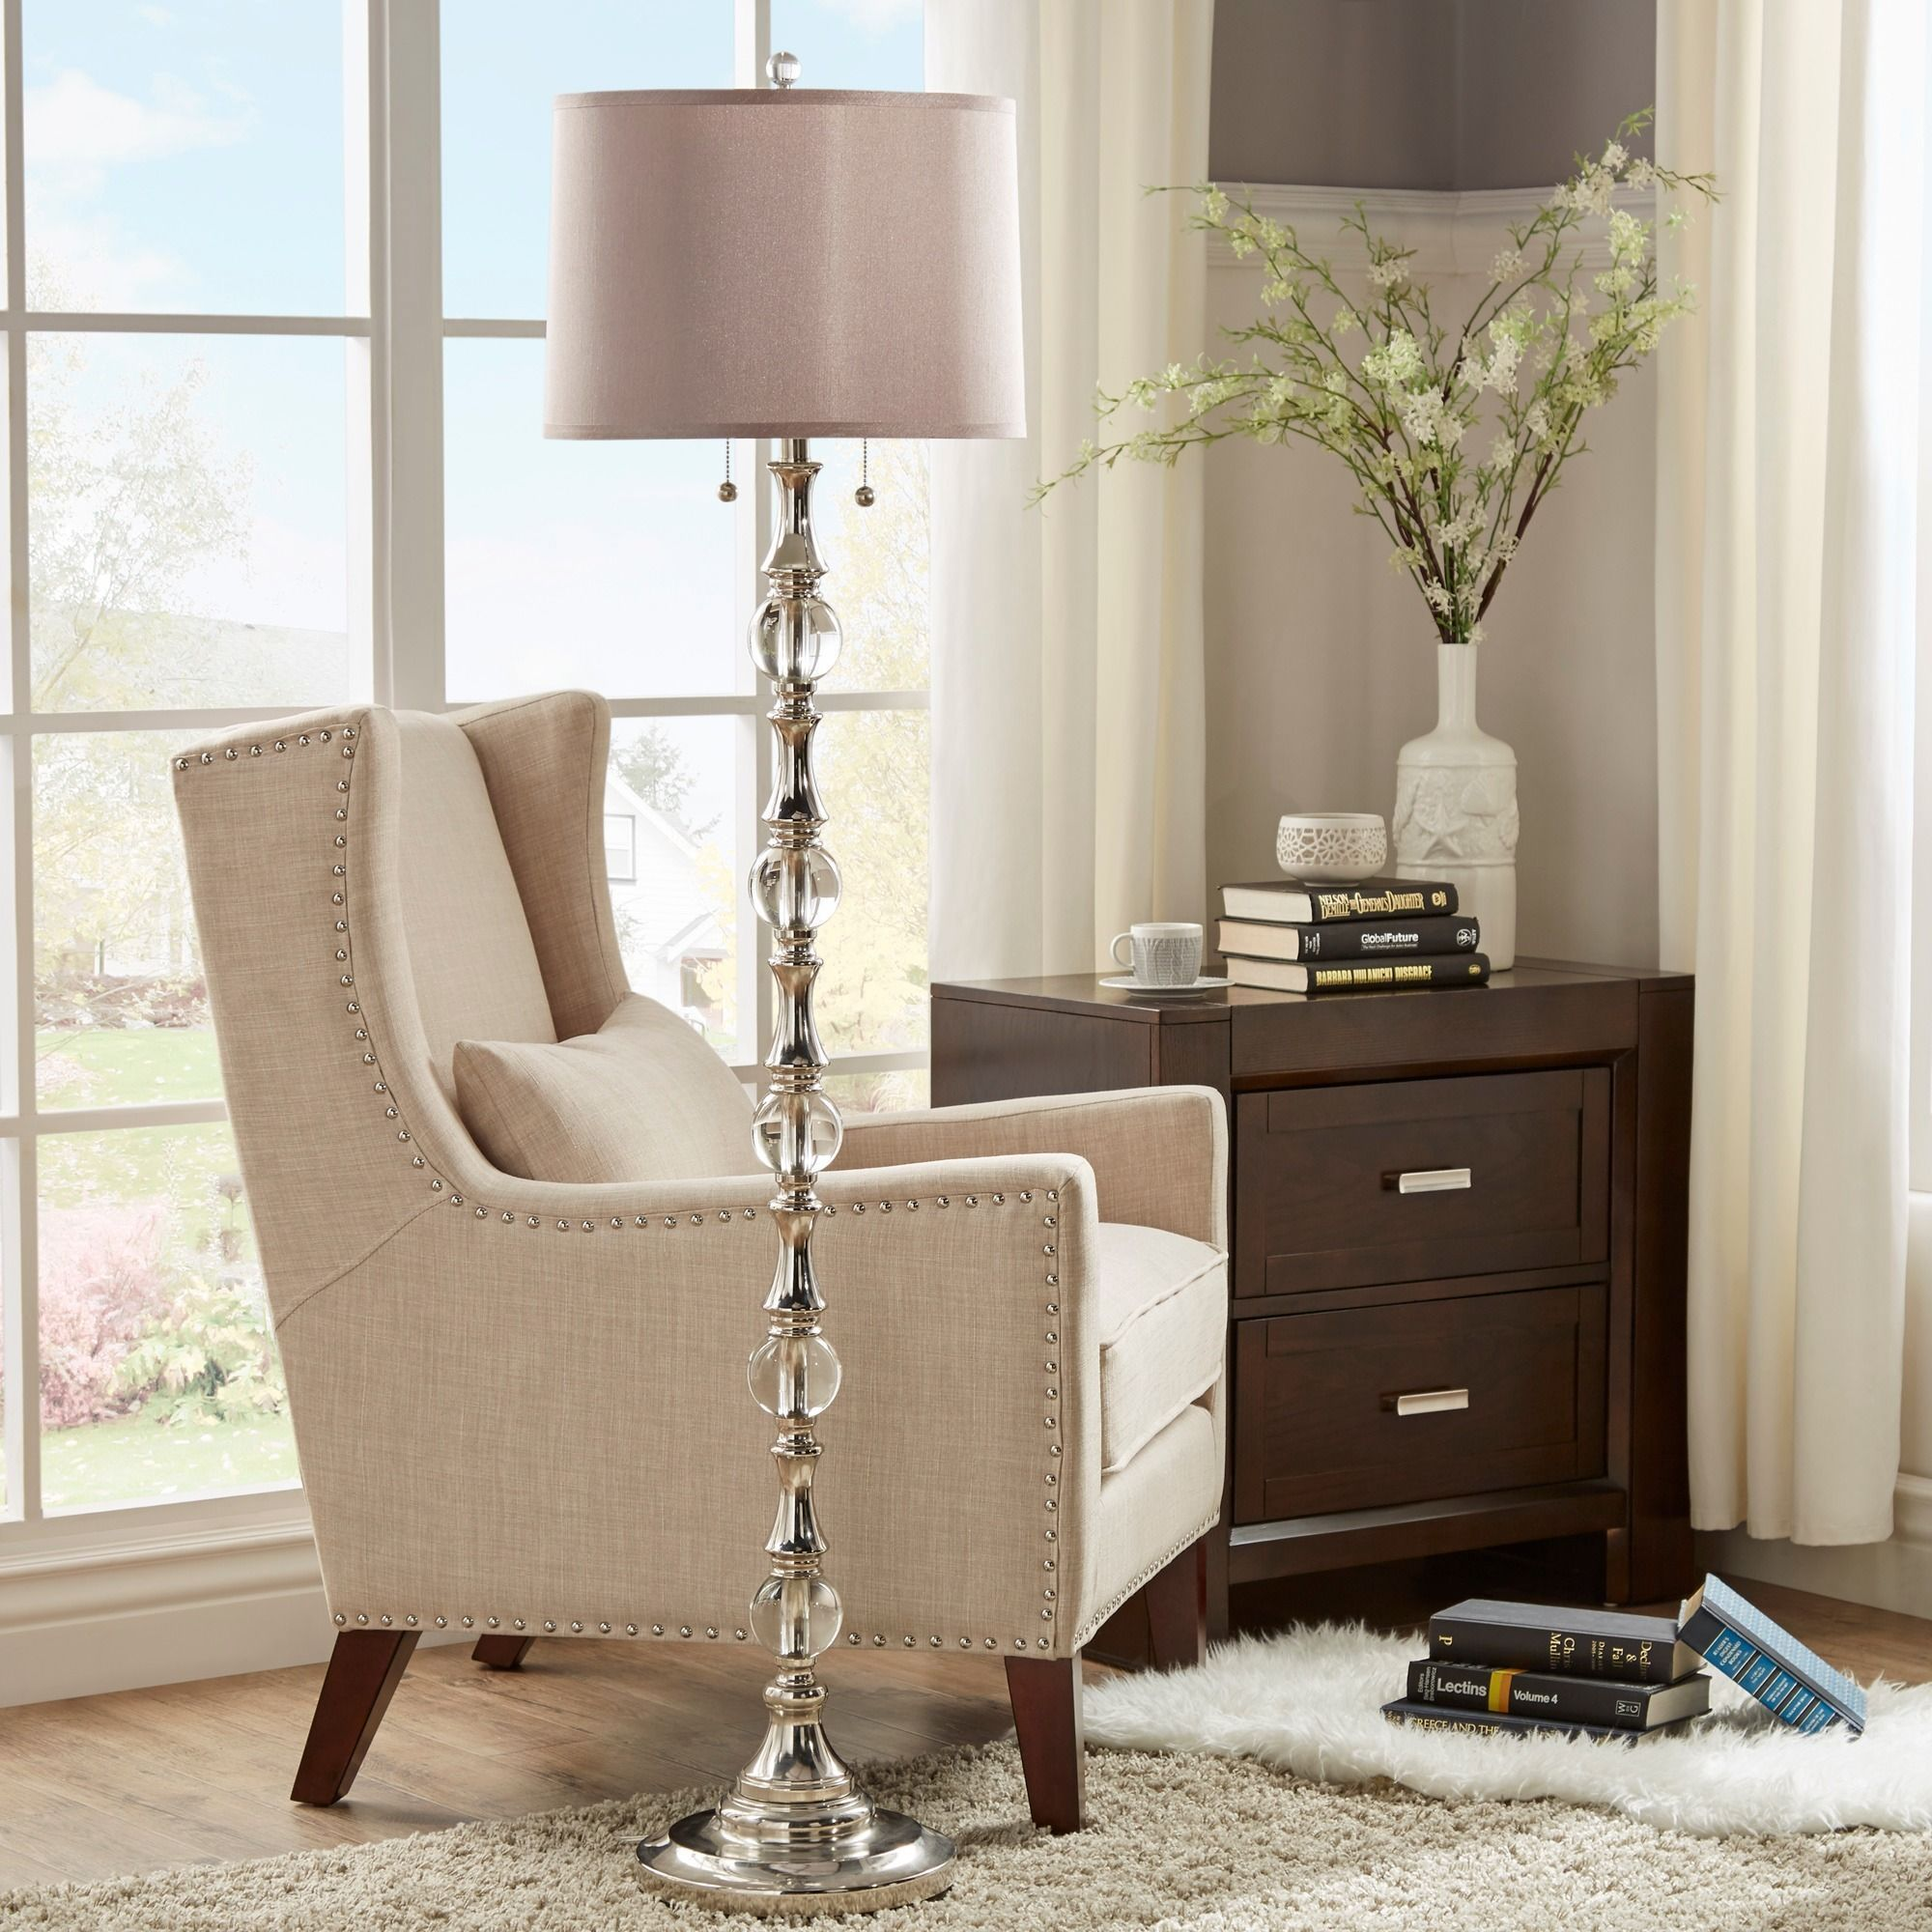 Tribecca Home Inspire Q Alric Glass Orb 2-Light Accent Floor Lamp (Floor  Lamp), Clear